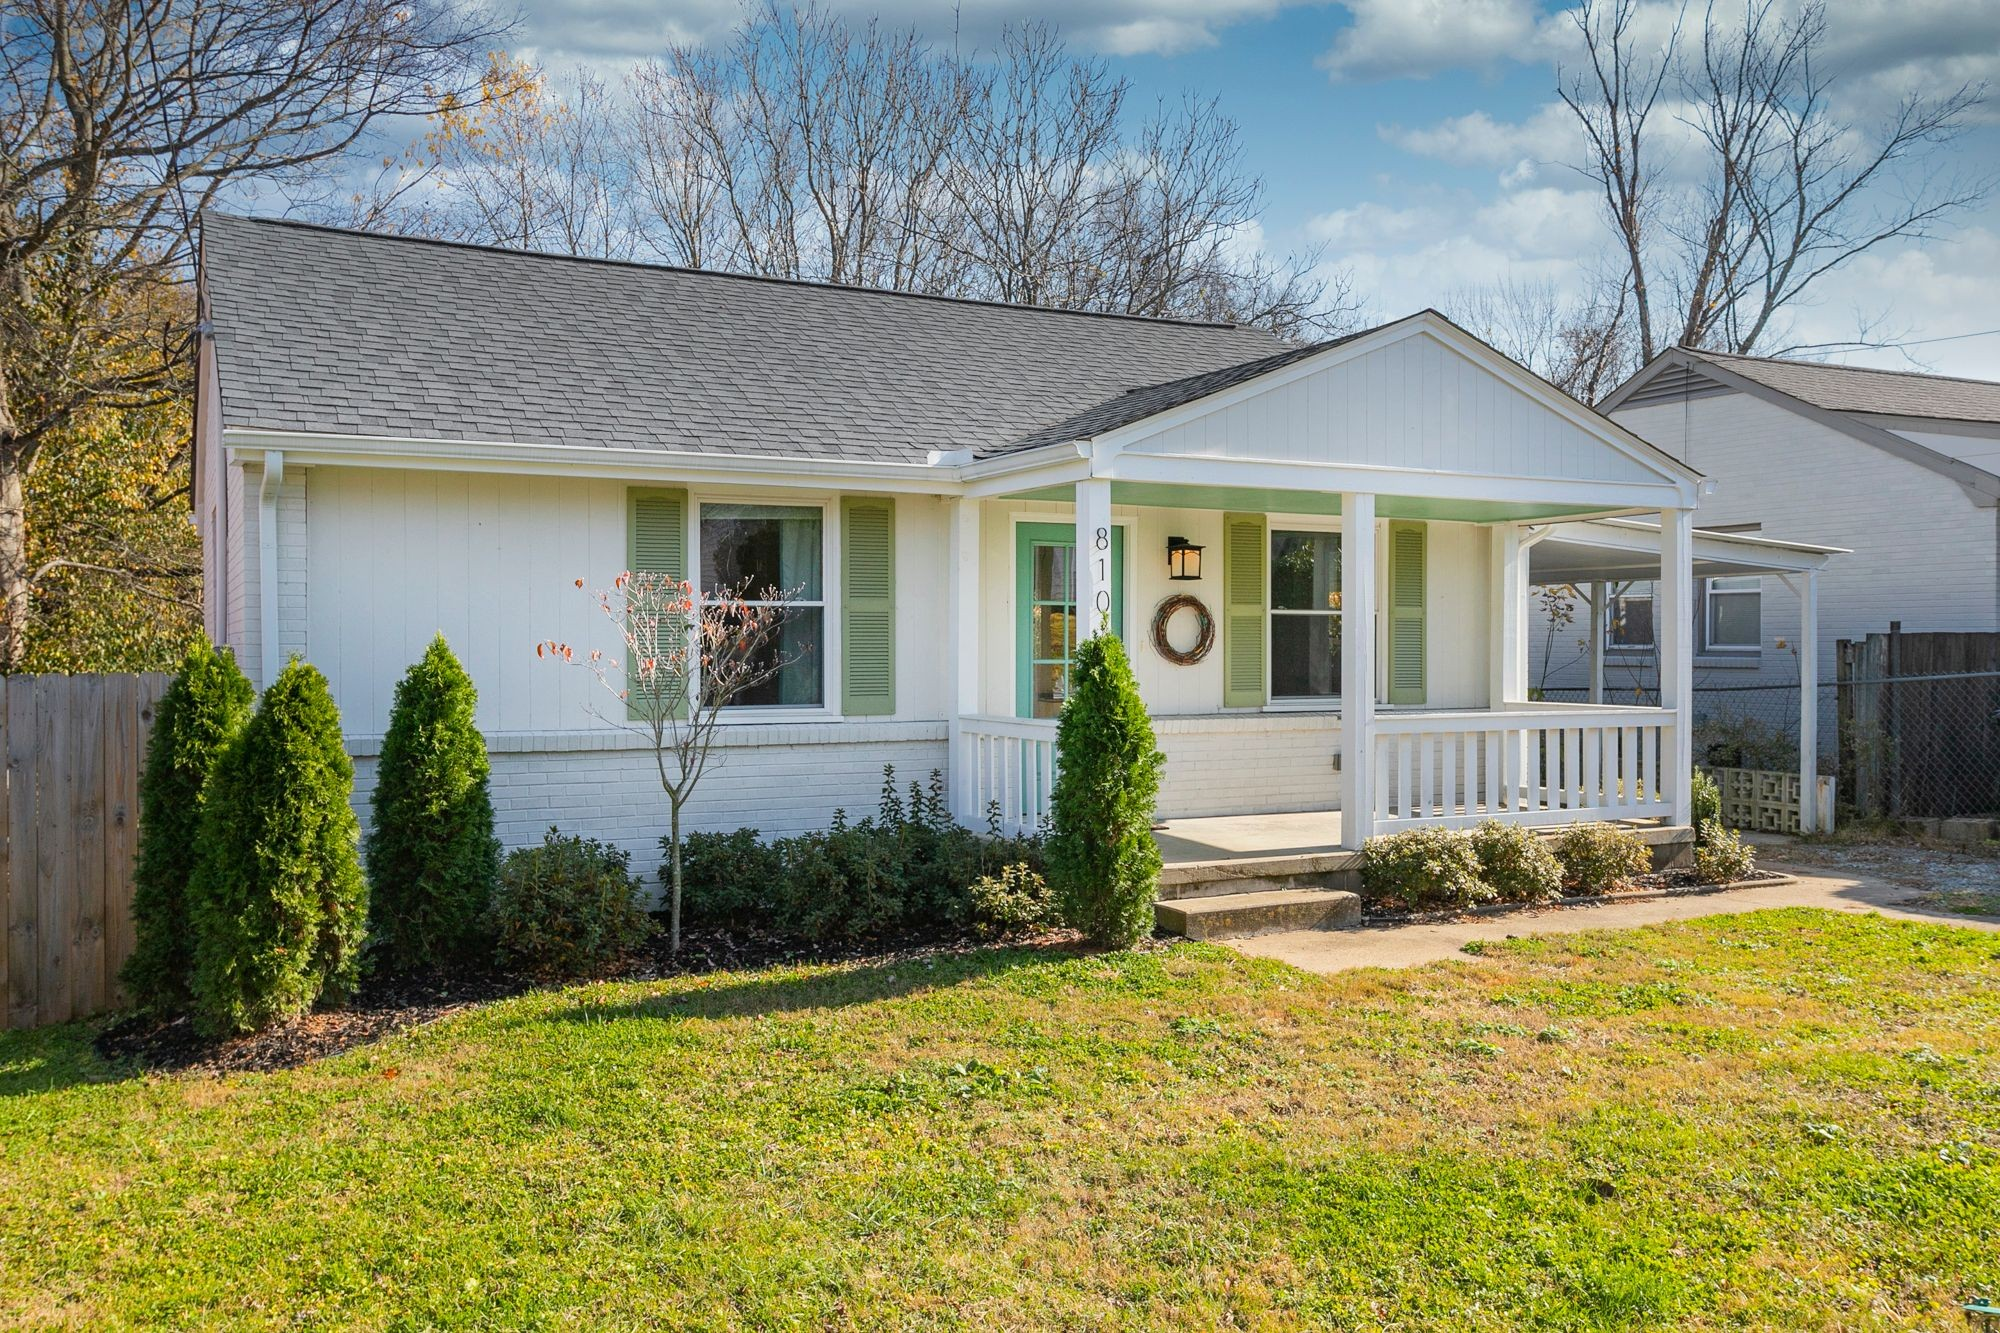 Beautiful renovation in East Nashville. Total Renovation in 2019 inside and out. Open area with kitchen and all new cabinets, granite bar, all new appliances. Privacy fenced in backyard to entertain in or for your furry friends to run. Too many renovations to list here. This beautiful home is one of the desired areas of East Nash. Walking distance to restaurants and retail shops. Additional pics will be available by Wednesday.